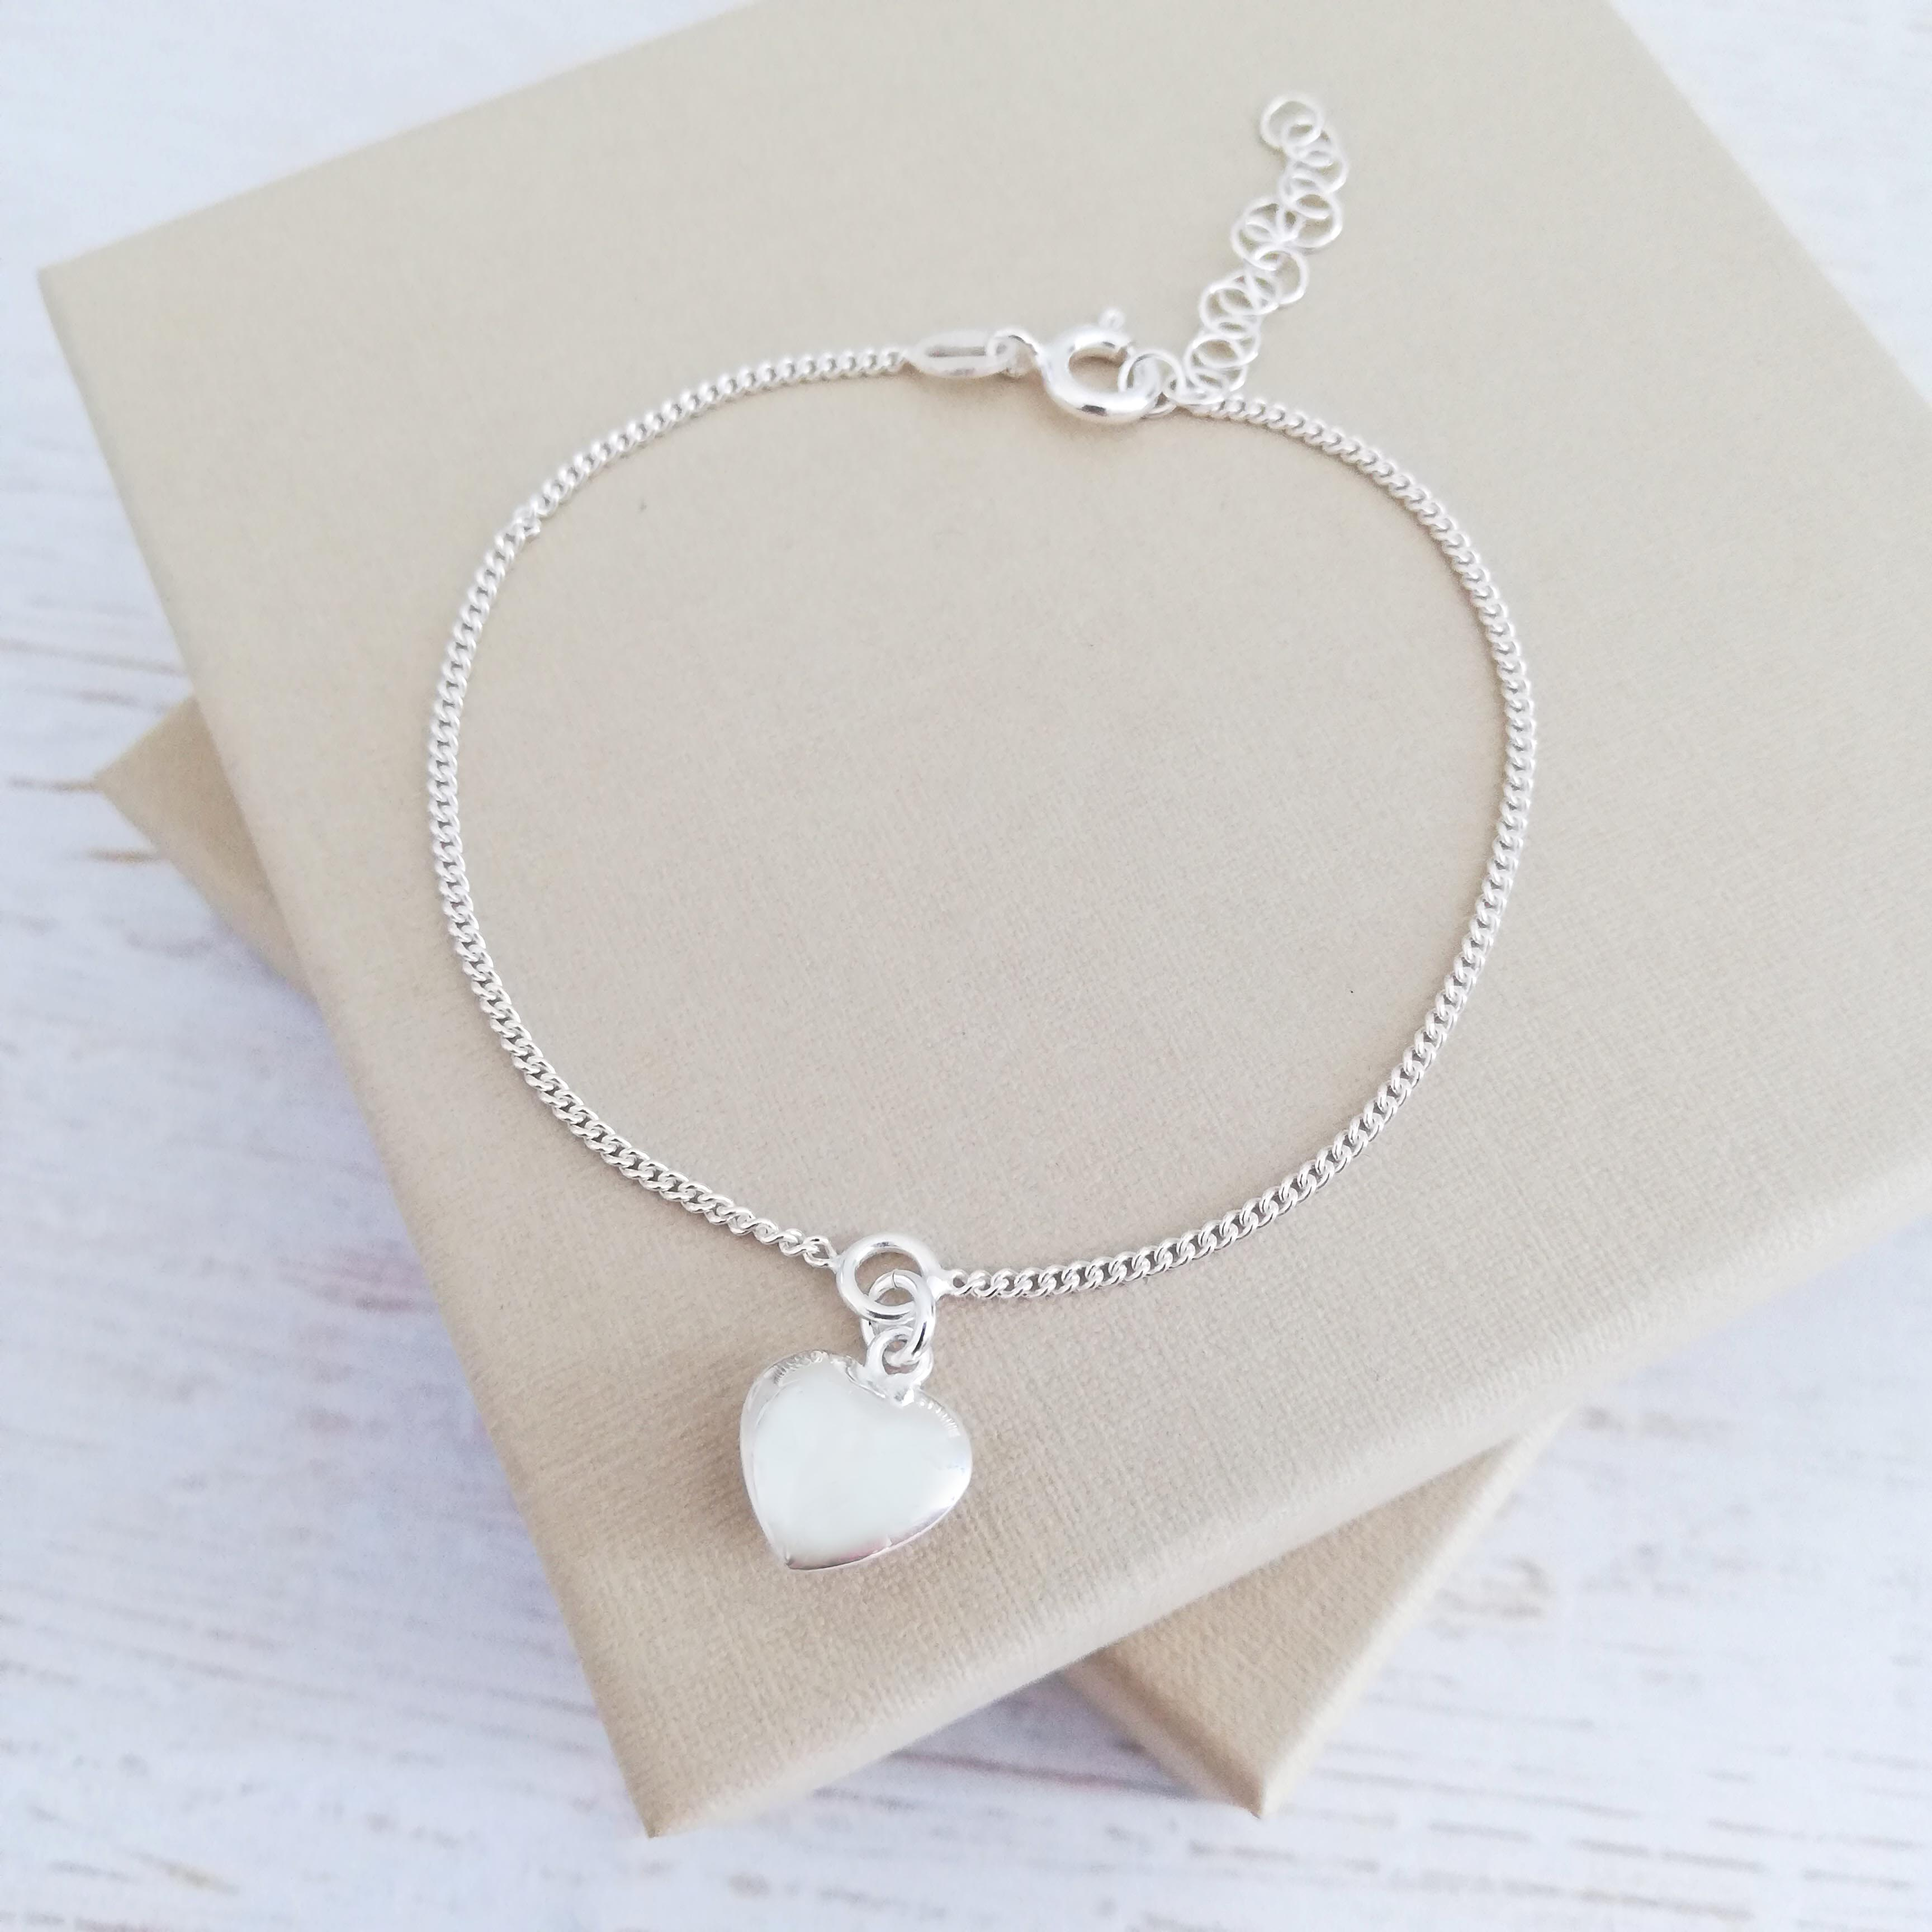 Sterling Silver  925 Belcher necklace chain with large feather charm in gift box